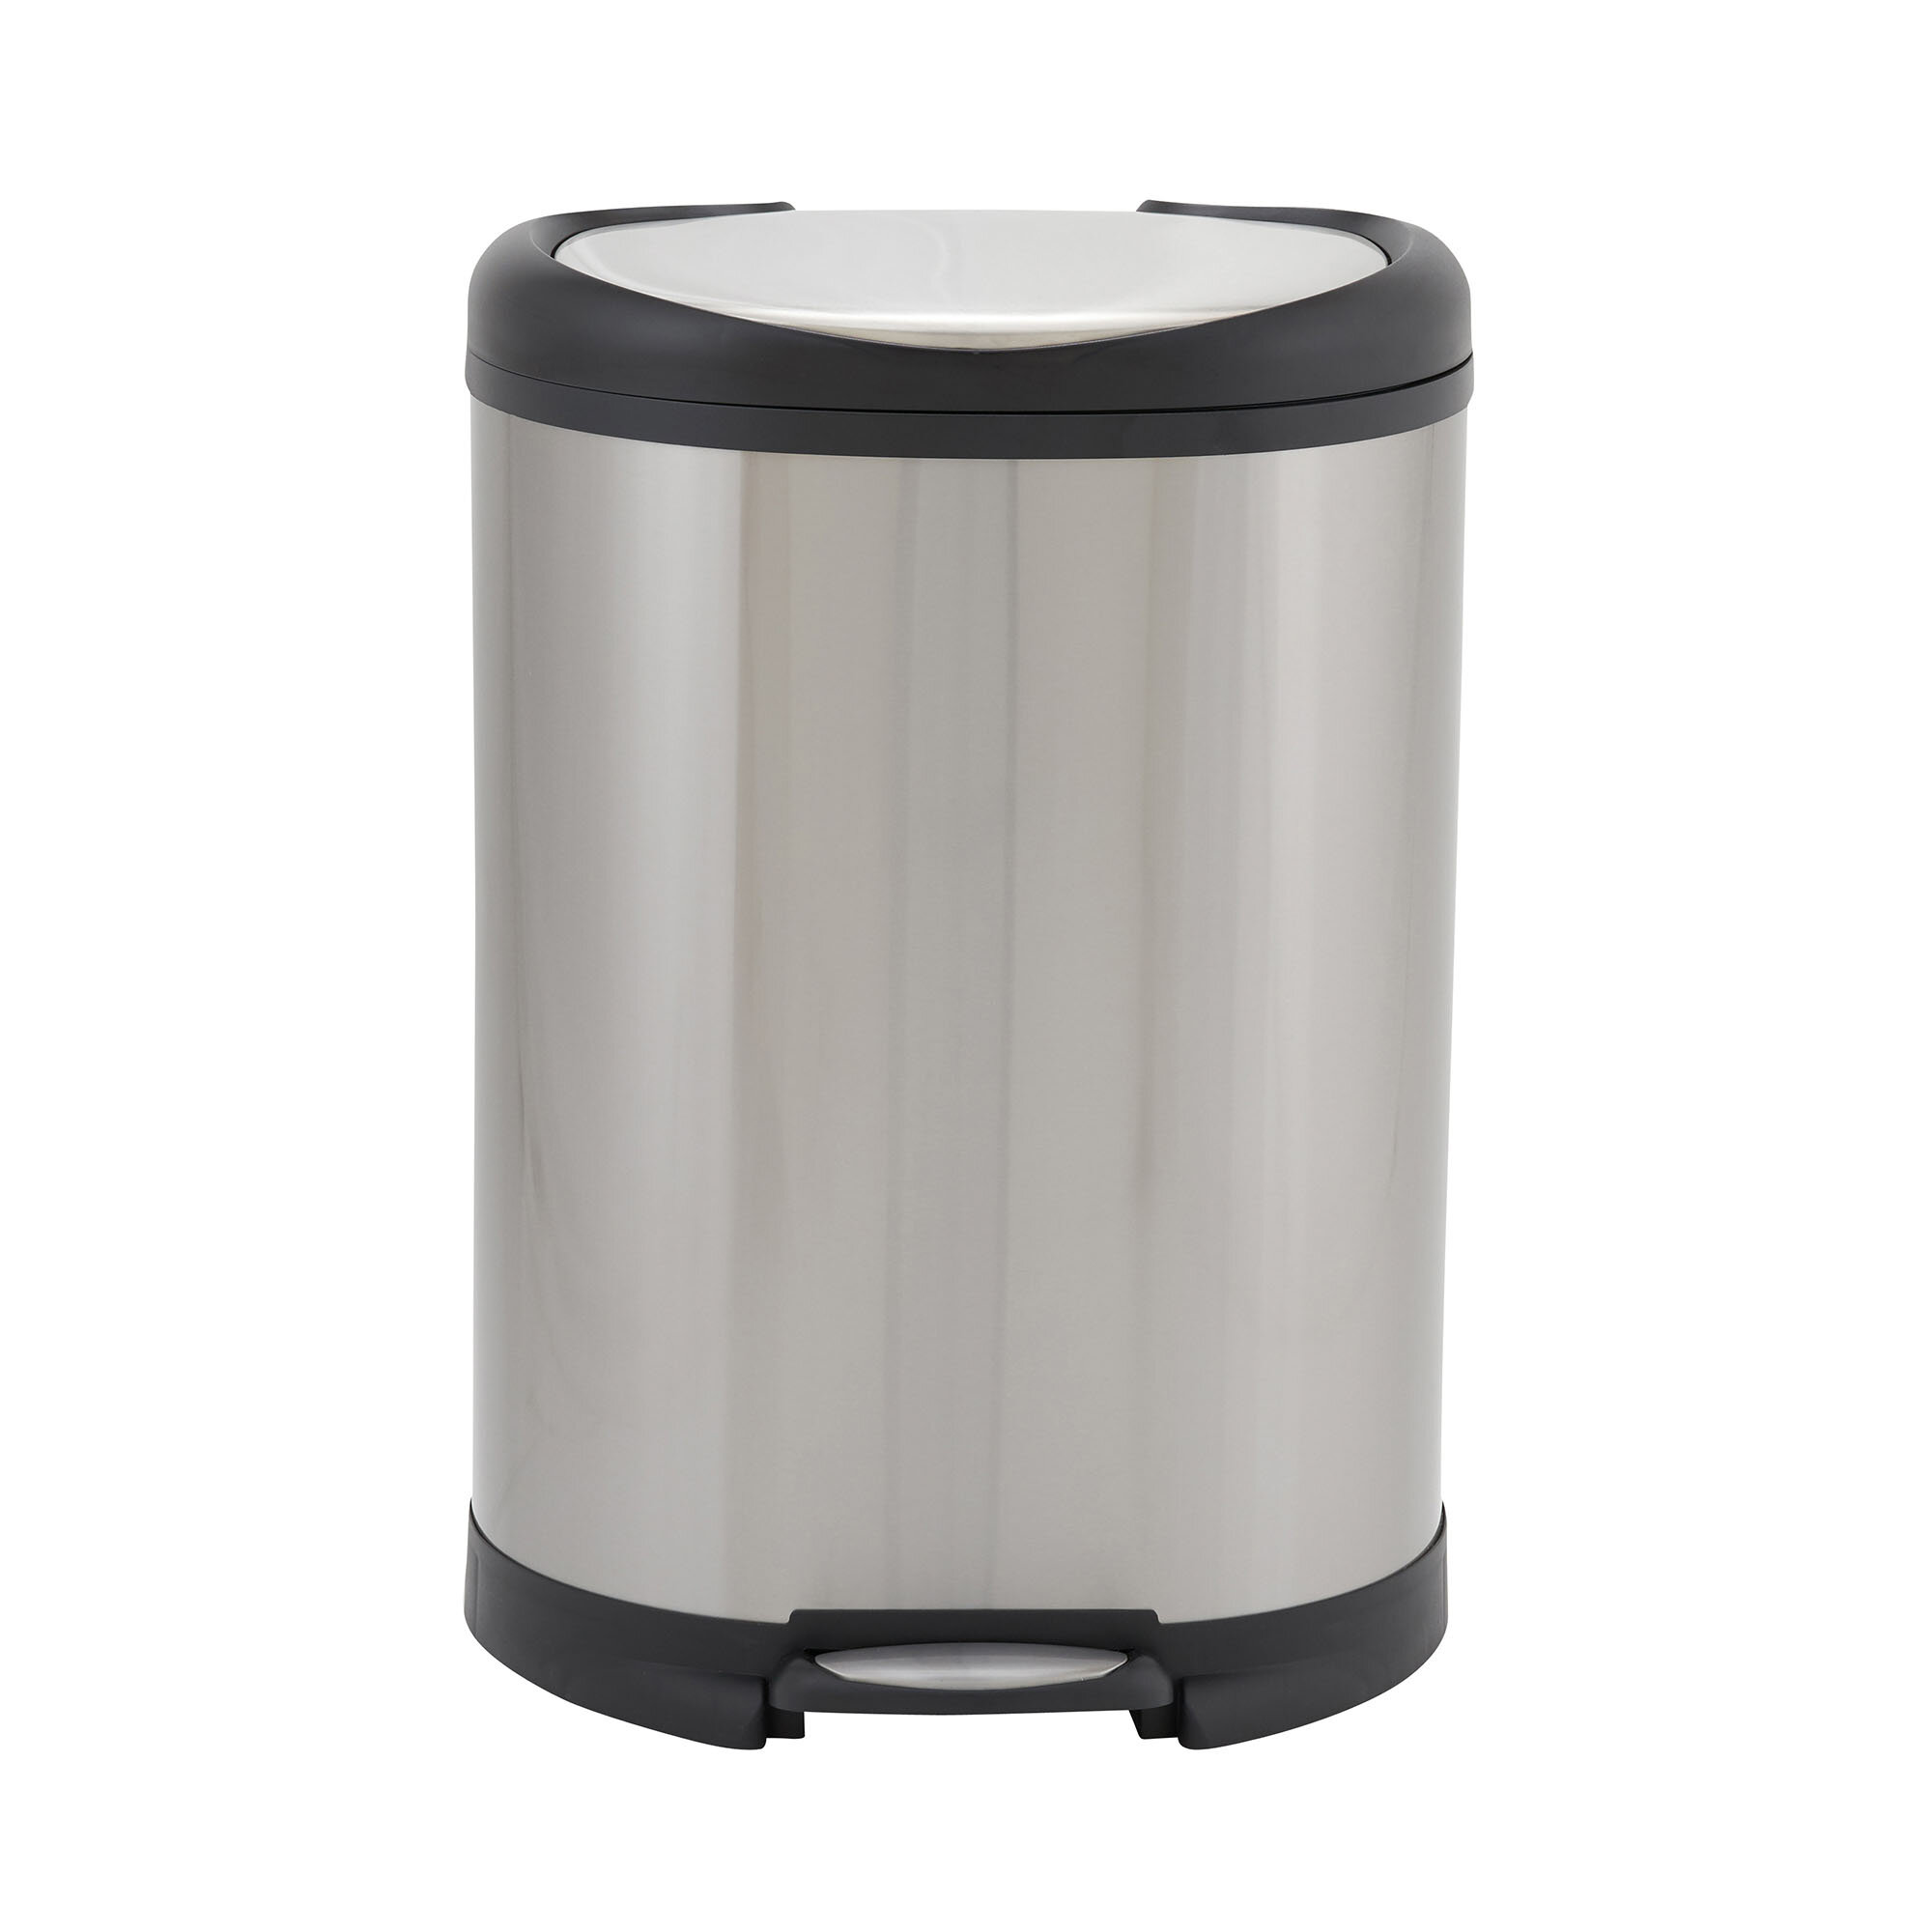 Design Trend Oval Stainless Steel 13 Gallon Step On Trash Can